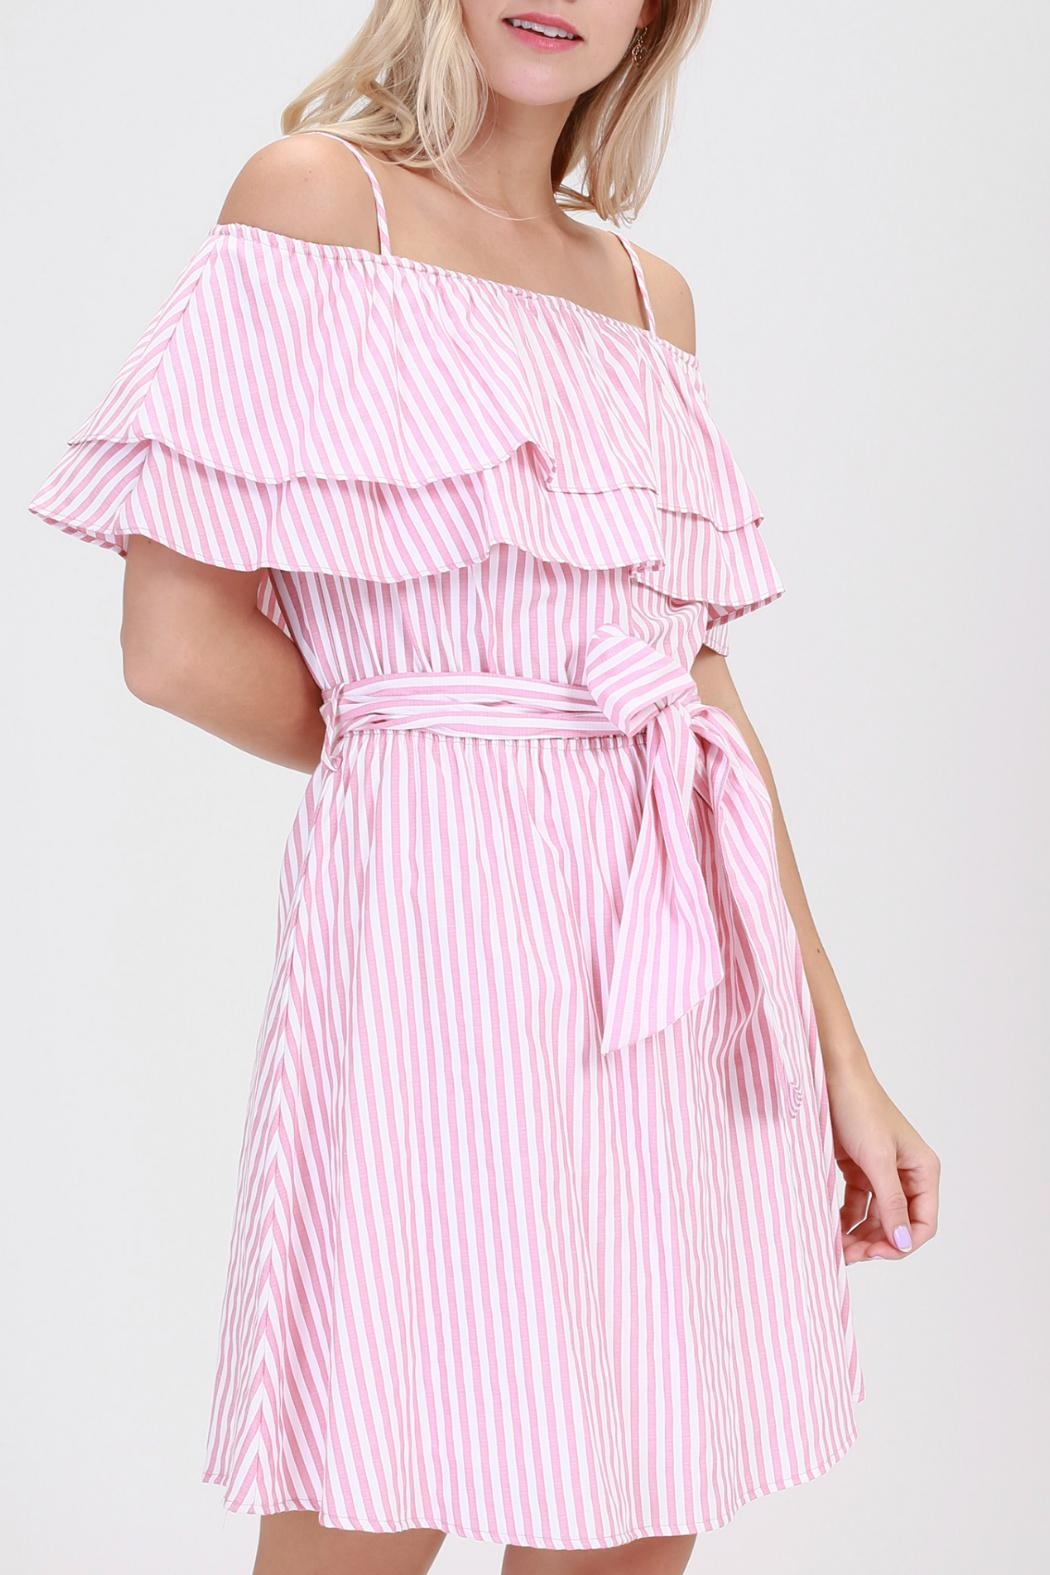 ALB Anchorage Pink-Striped Ruffle Dress - Front Full Image